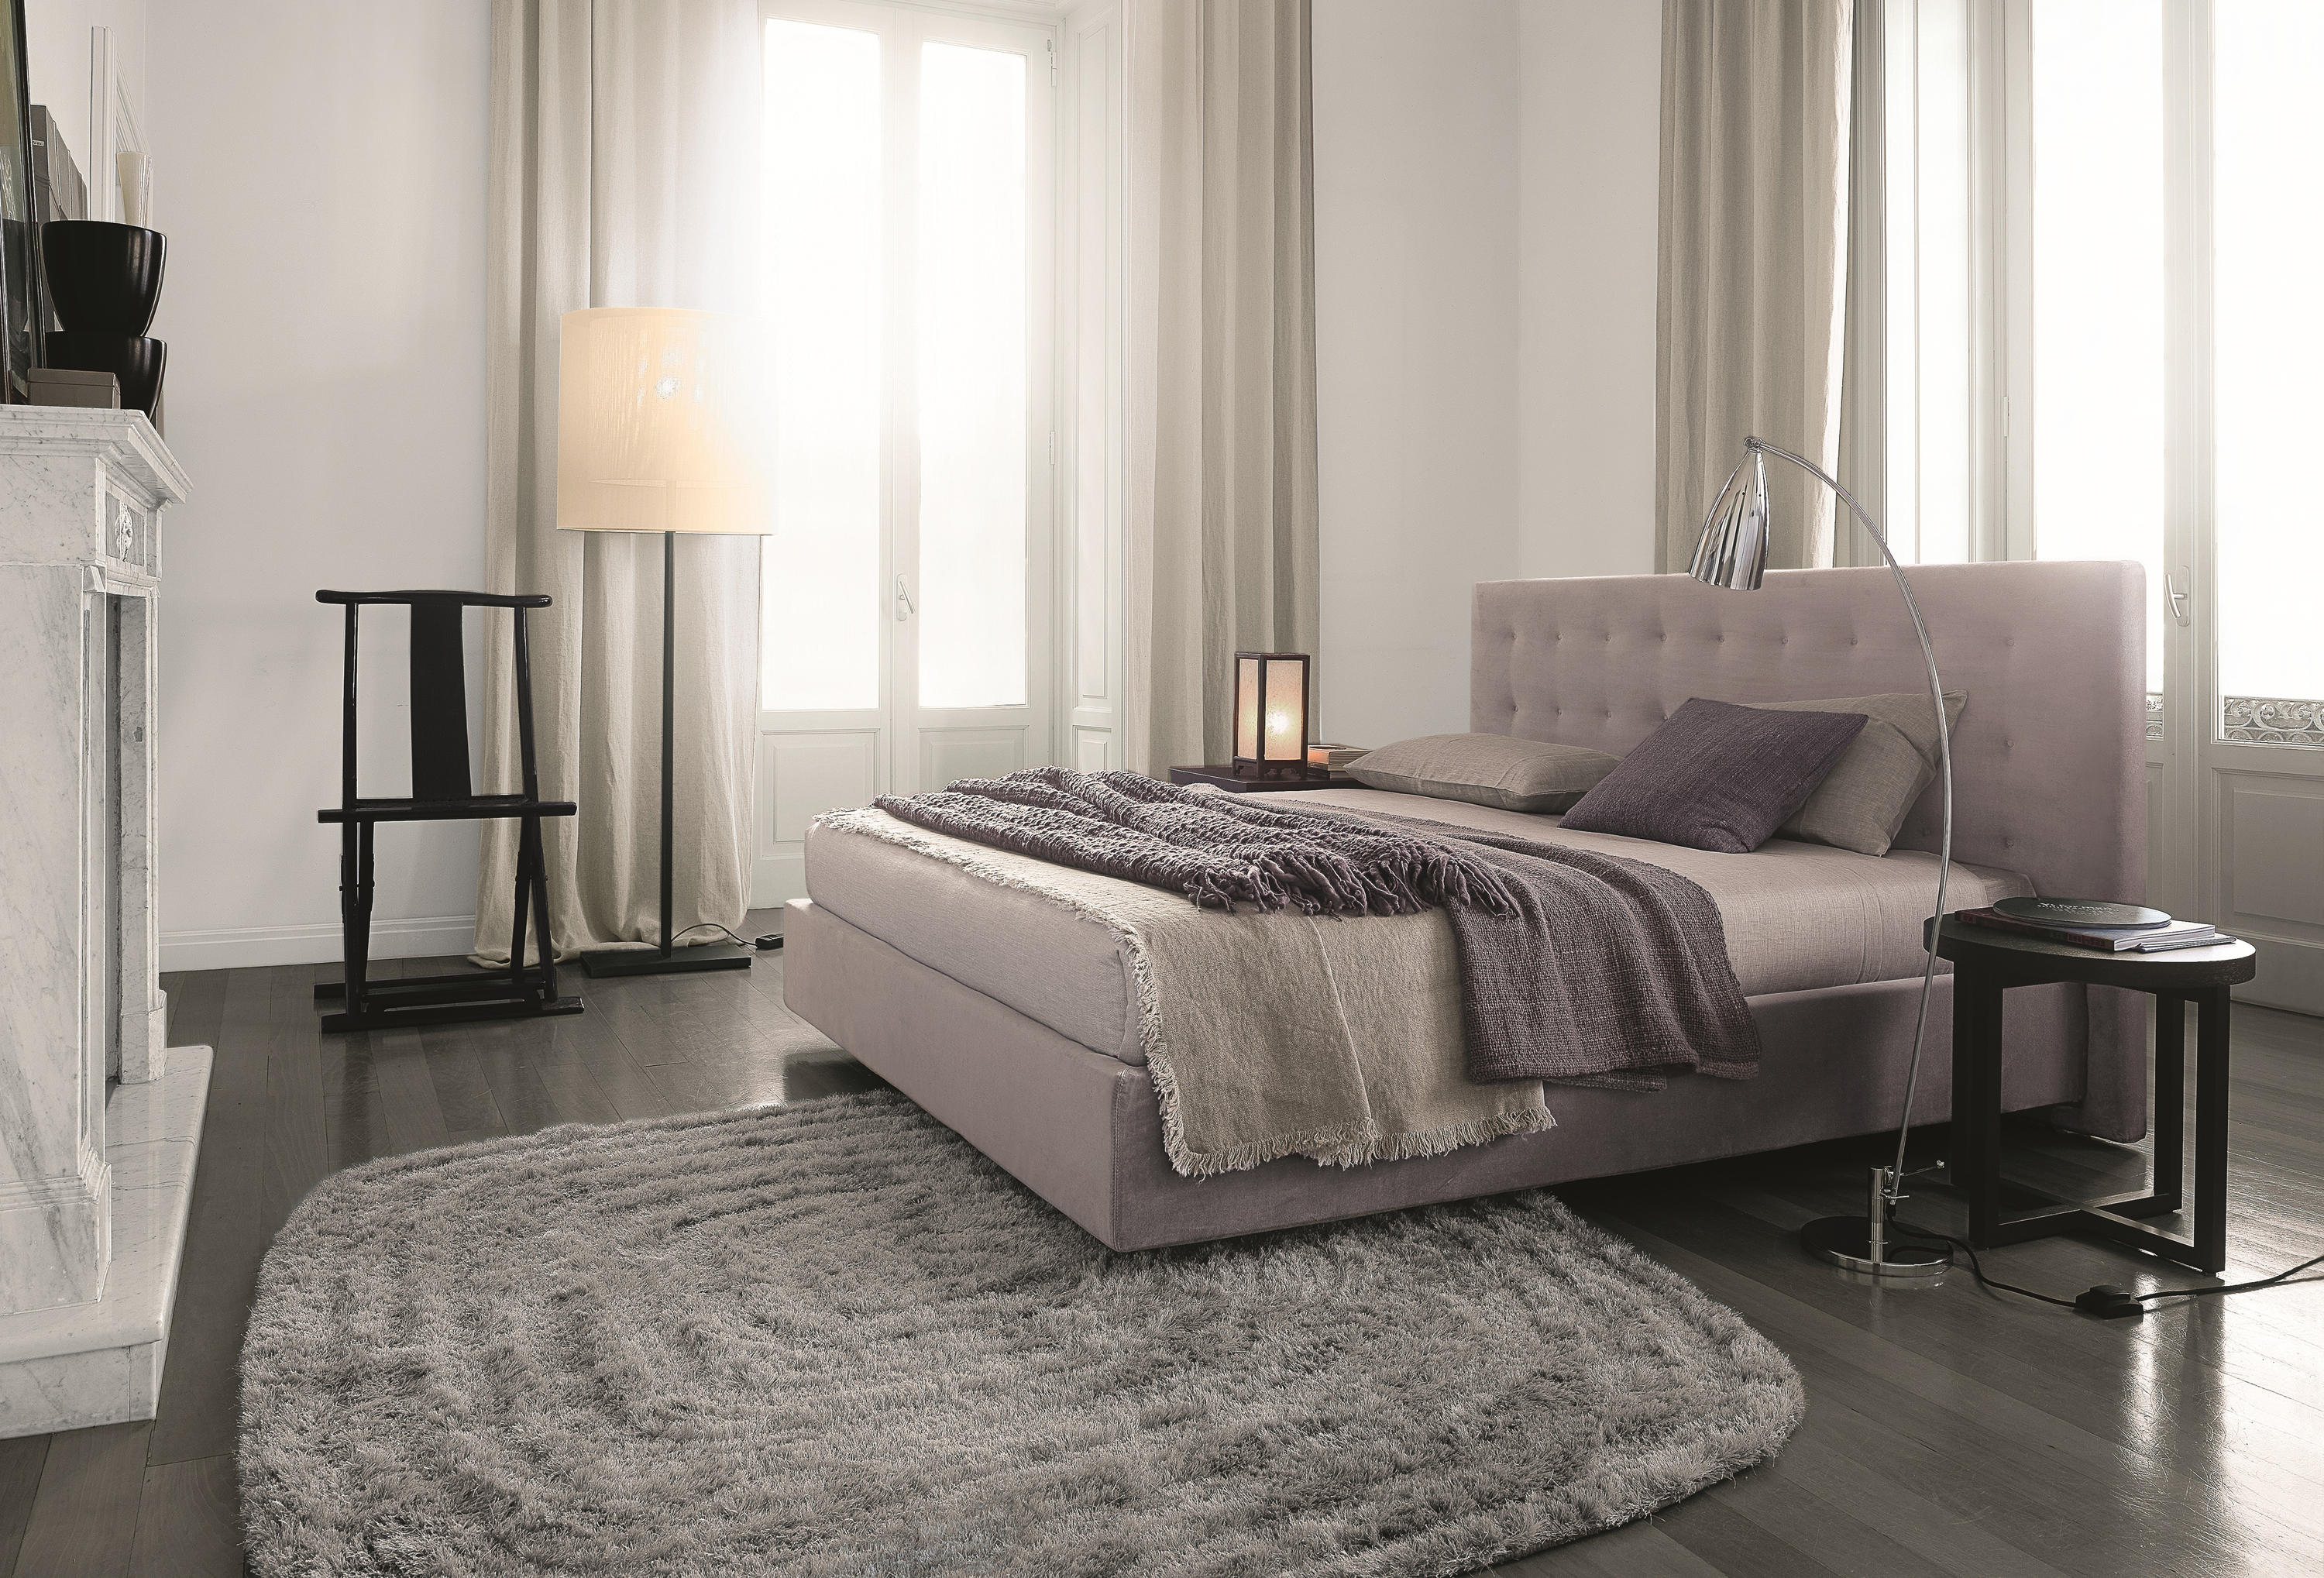 Arca bed double beds from poliform architonic for Letto arca poliform